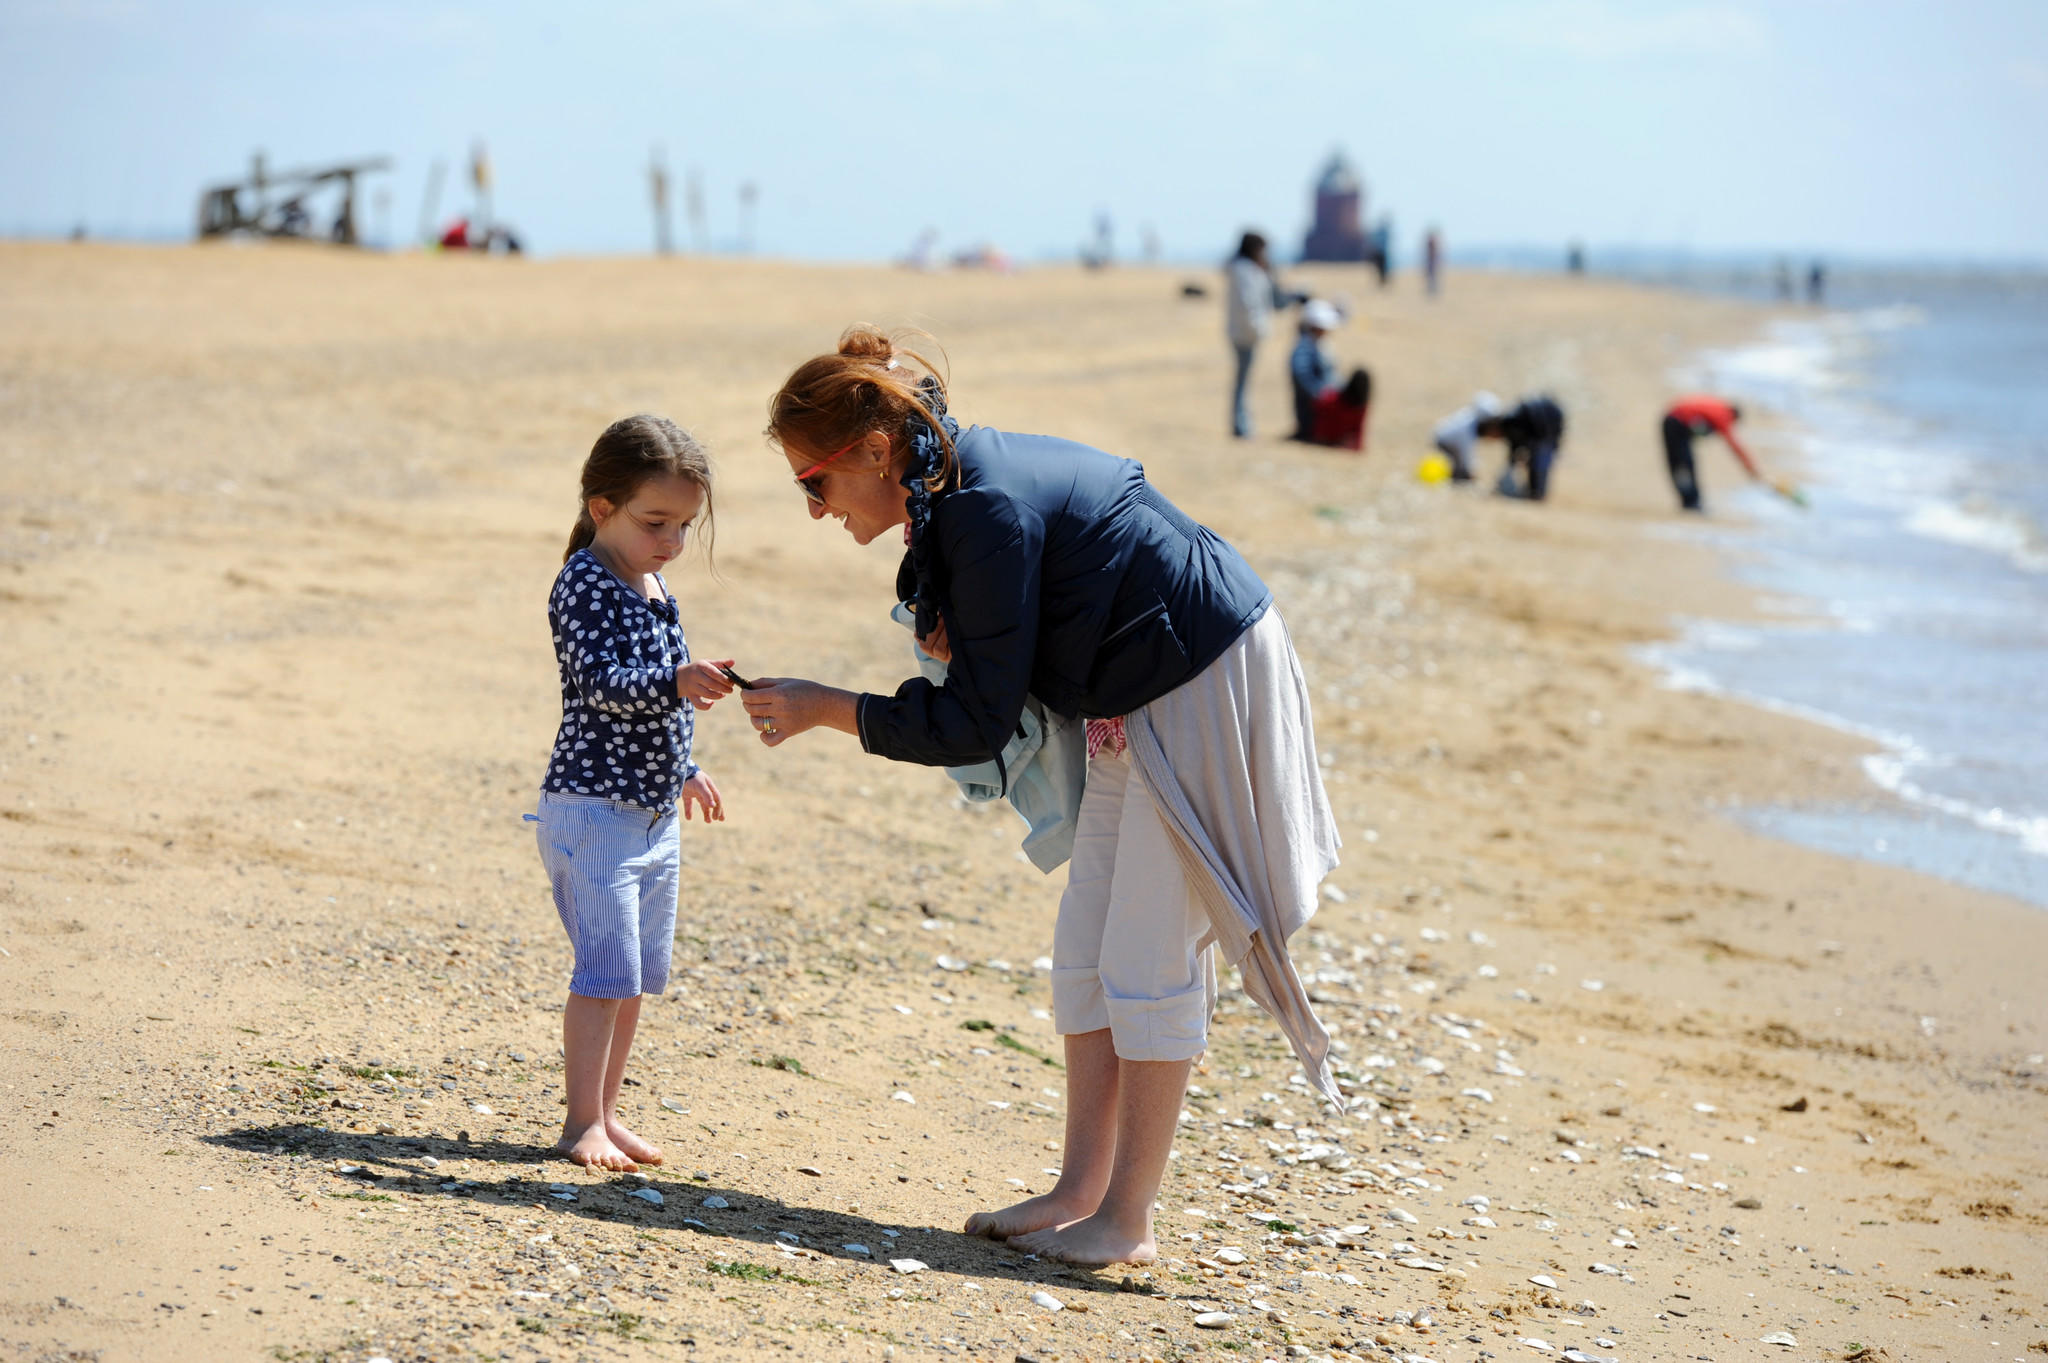 Sorcha Claassens, South Orange, NJ, and her daughter, Darcy Claassens, 3, look at things they find on the beach at Sandy Point State Park over Memorial Day weekend in 2013.